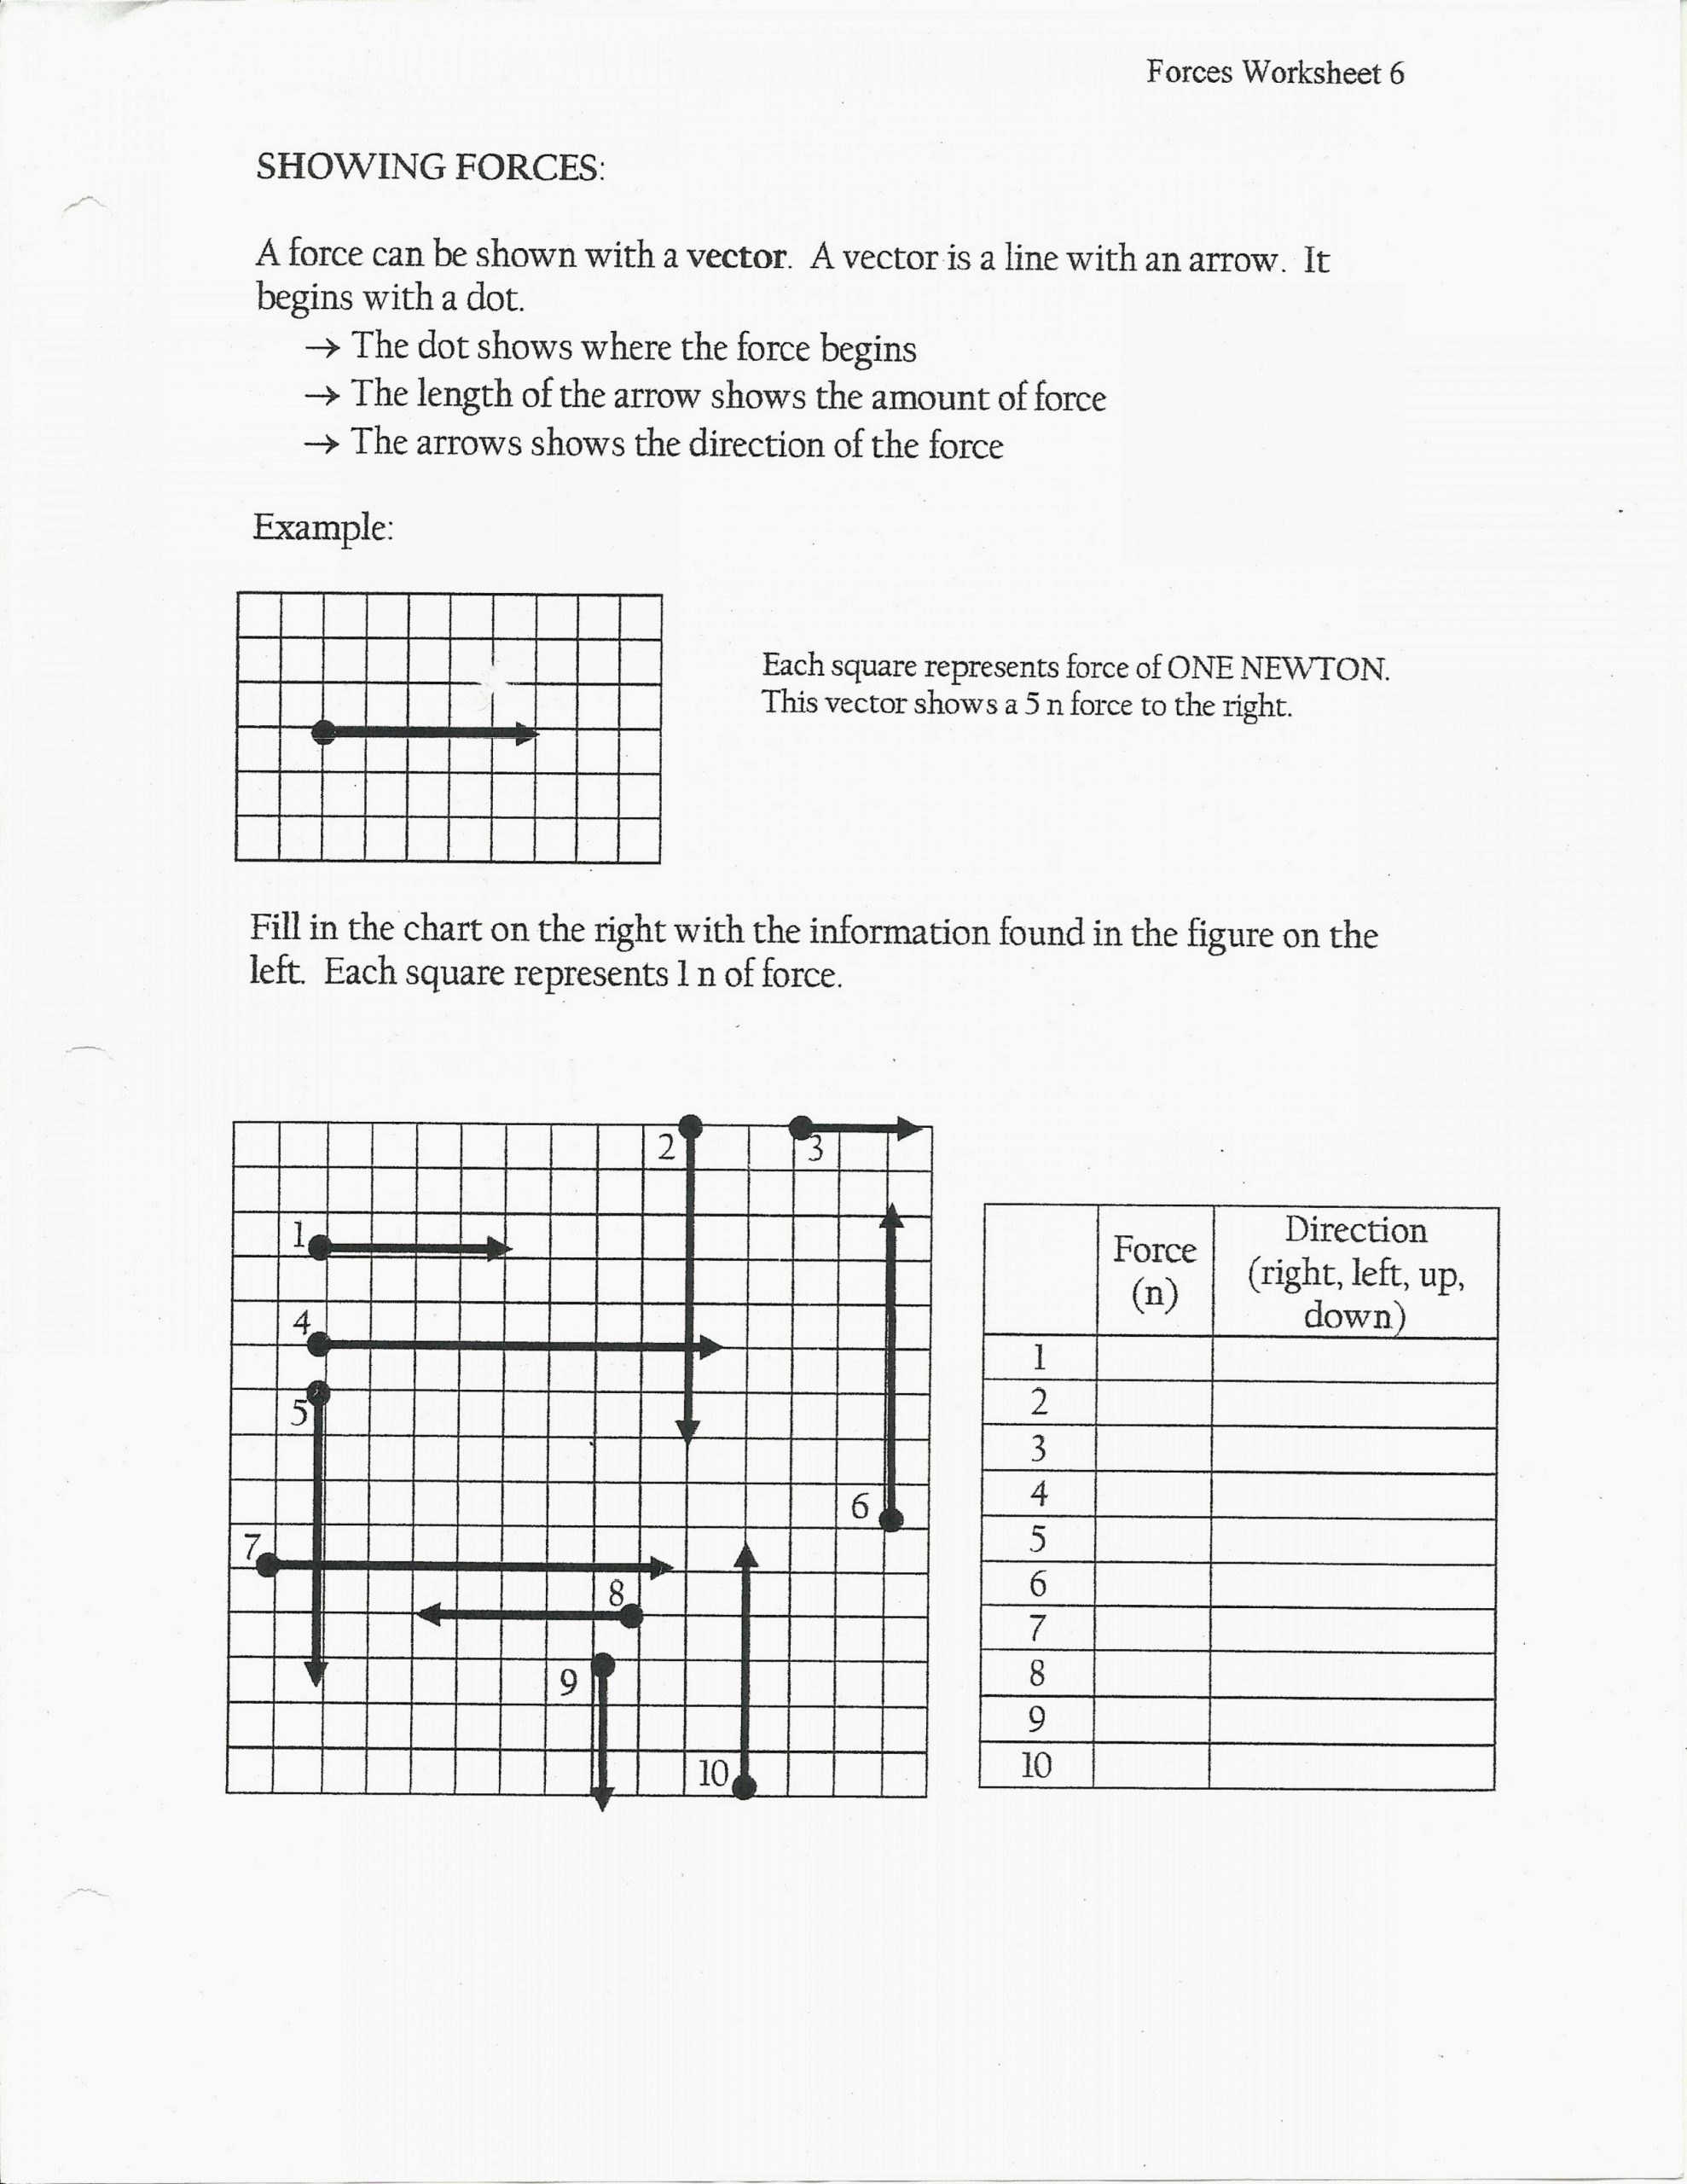 Vector Worksheet Physics Answers An Object is Launched Projectile Motion Worksheet Answers